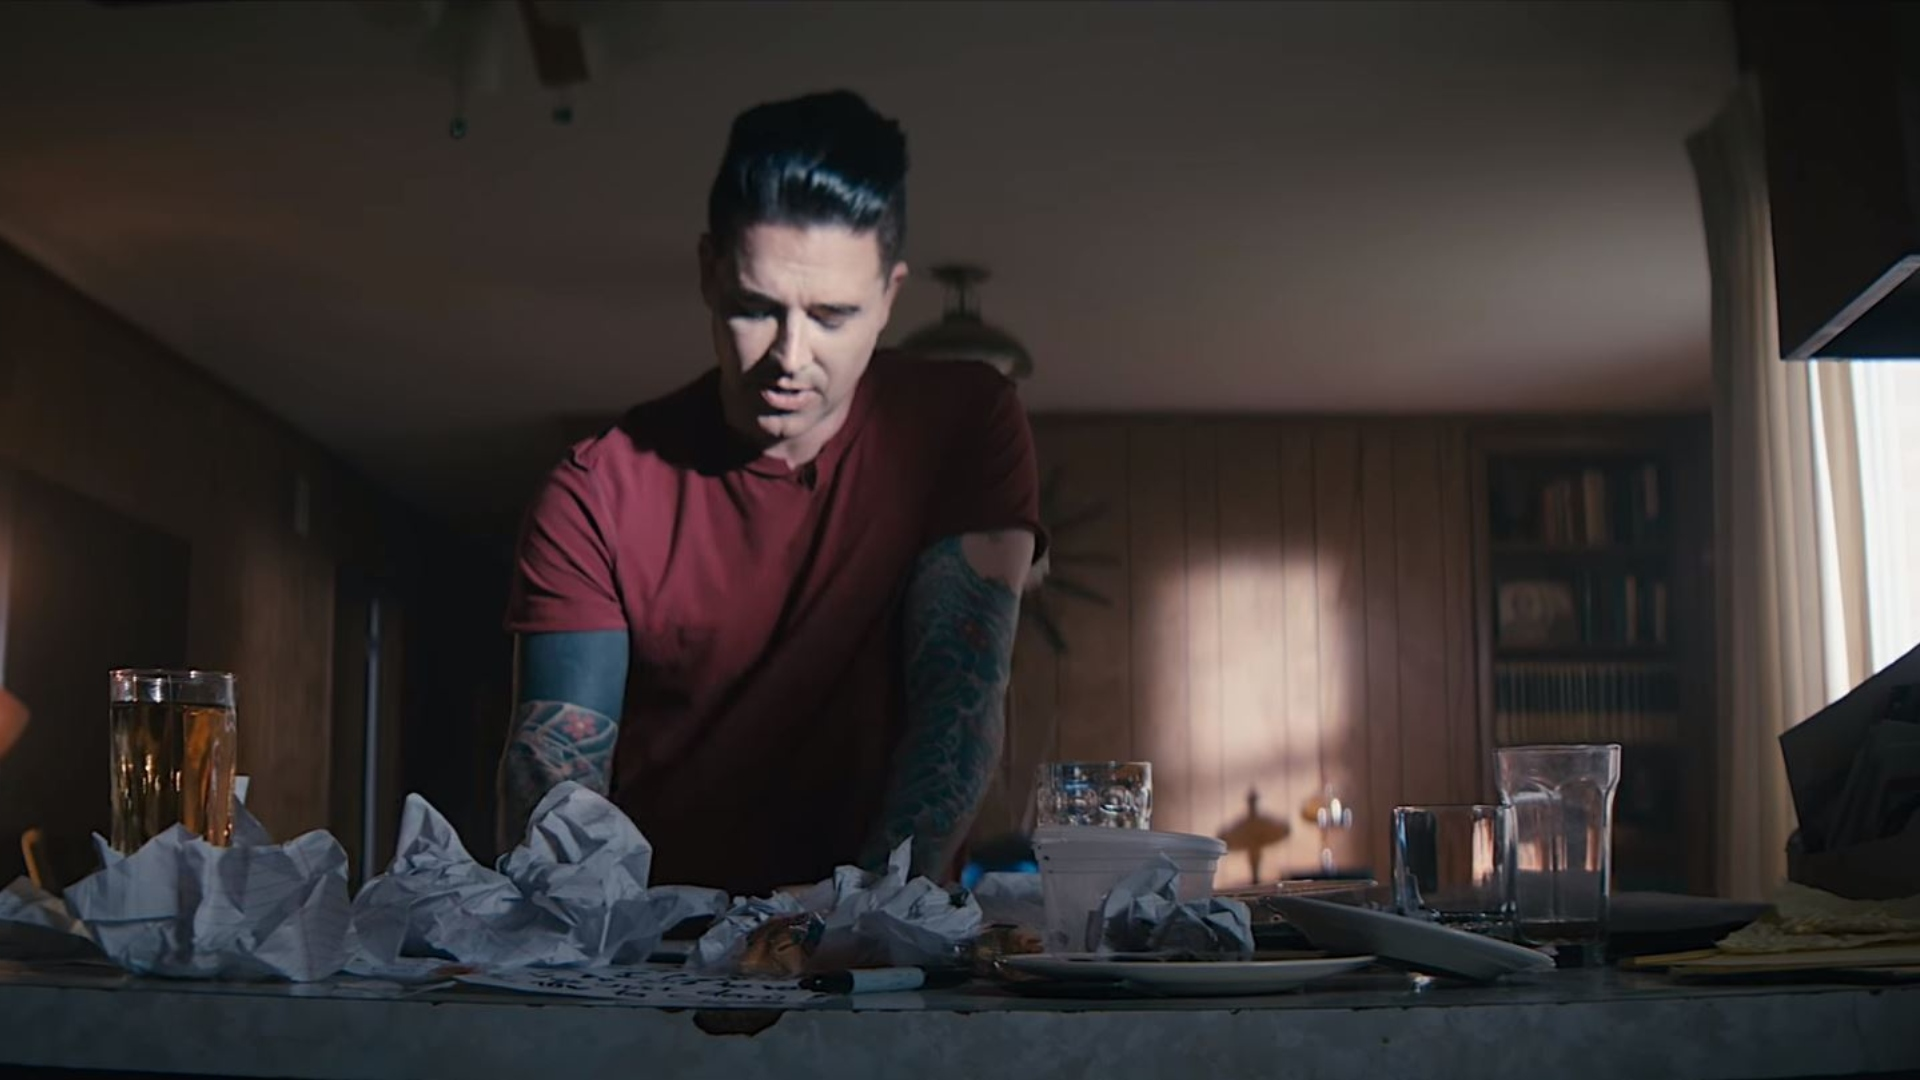 Dashboard Confessional - Just What To Say ft Chrissy Costanza